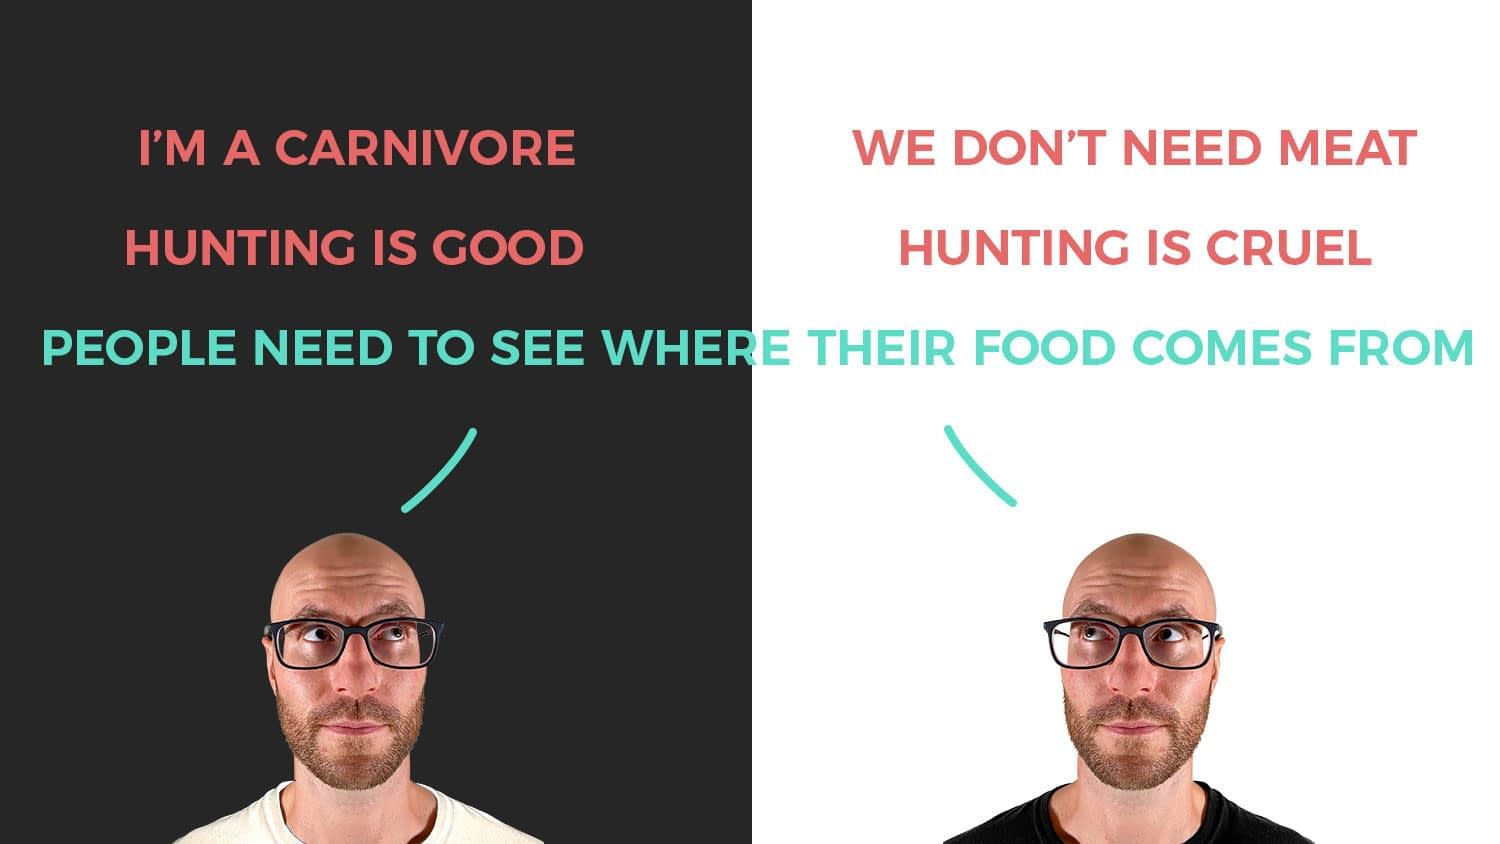 Rich finding common ground when talking about veganism